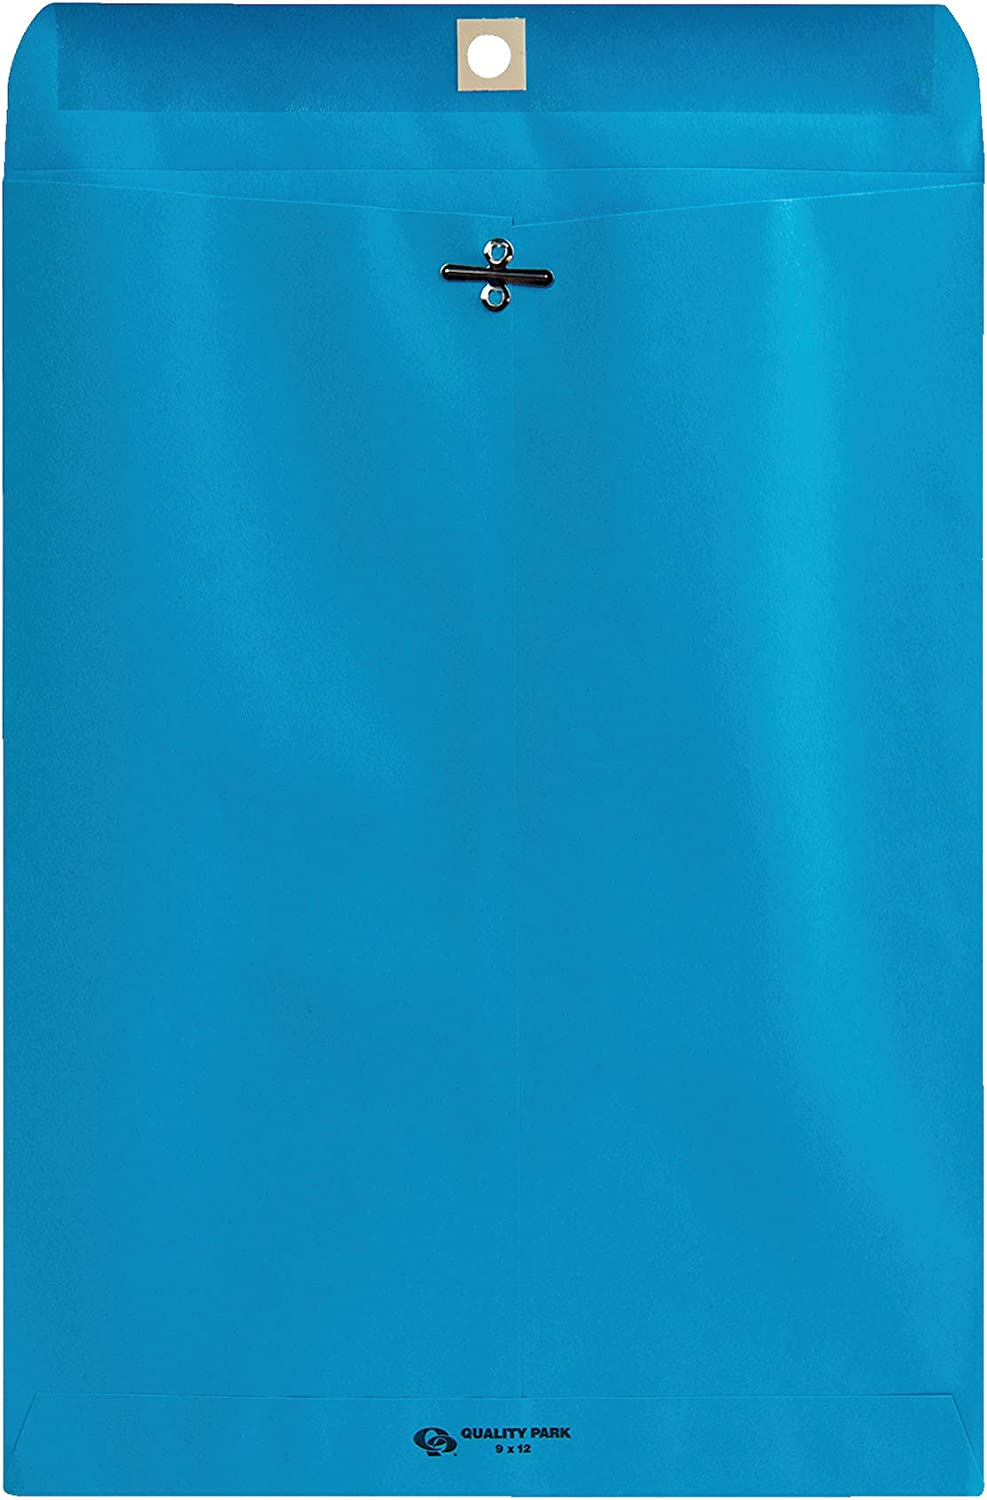 Quality Park Clasp Envelopes, 9 x 12 inches, Blue, Pack of 10 (38737) : Office Products